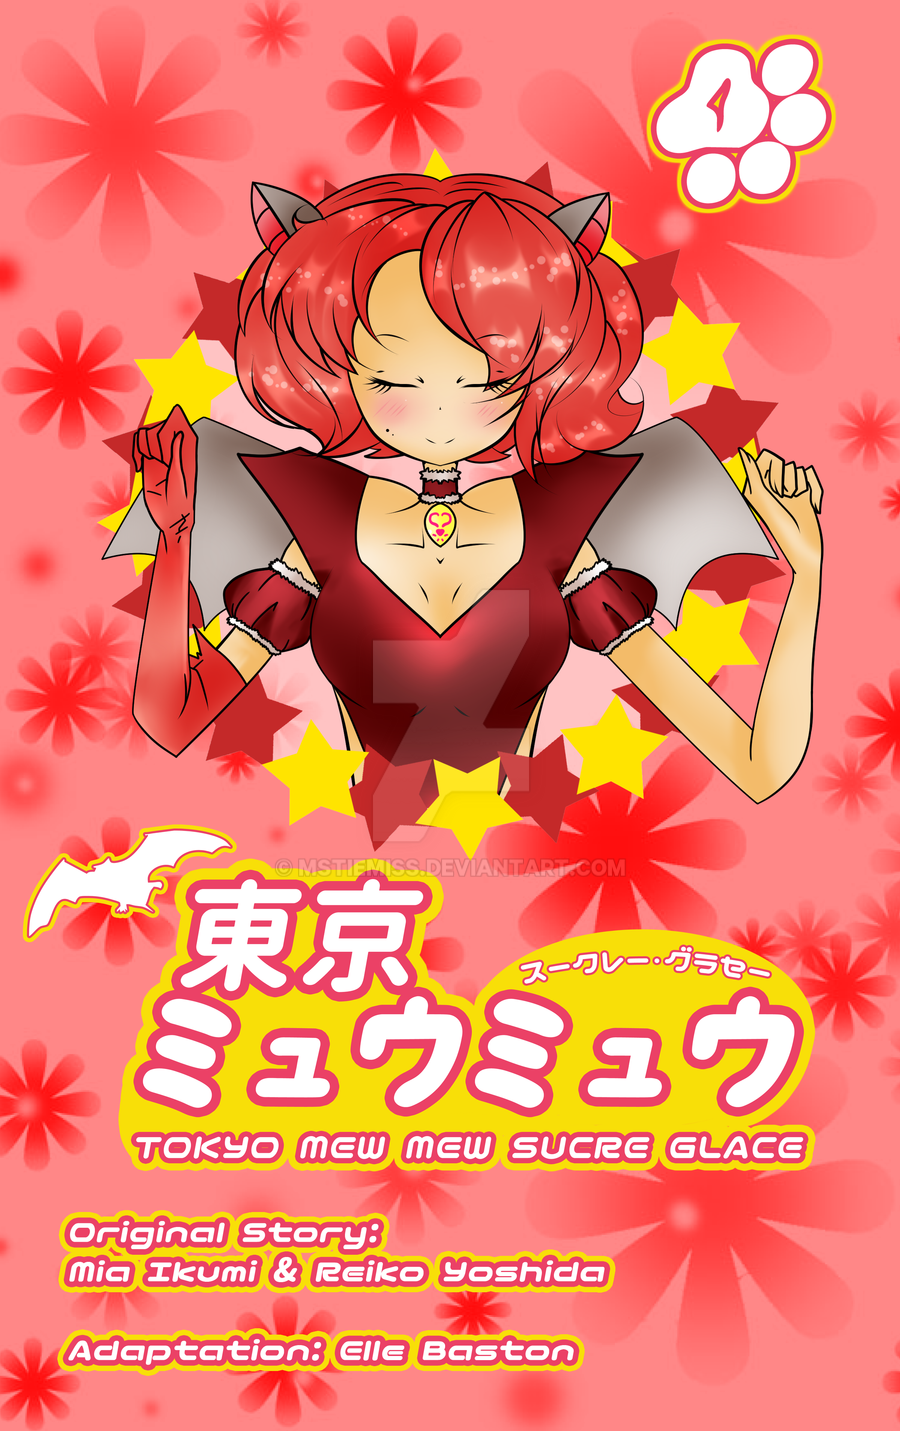 Tokyo Mew Mew Sucre Glace | Volume 1 Cover by MSTieMiss